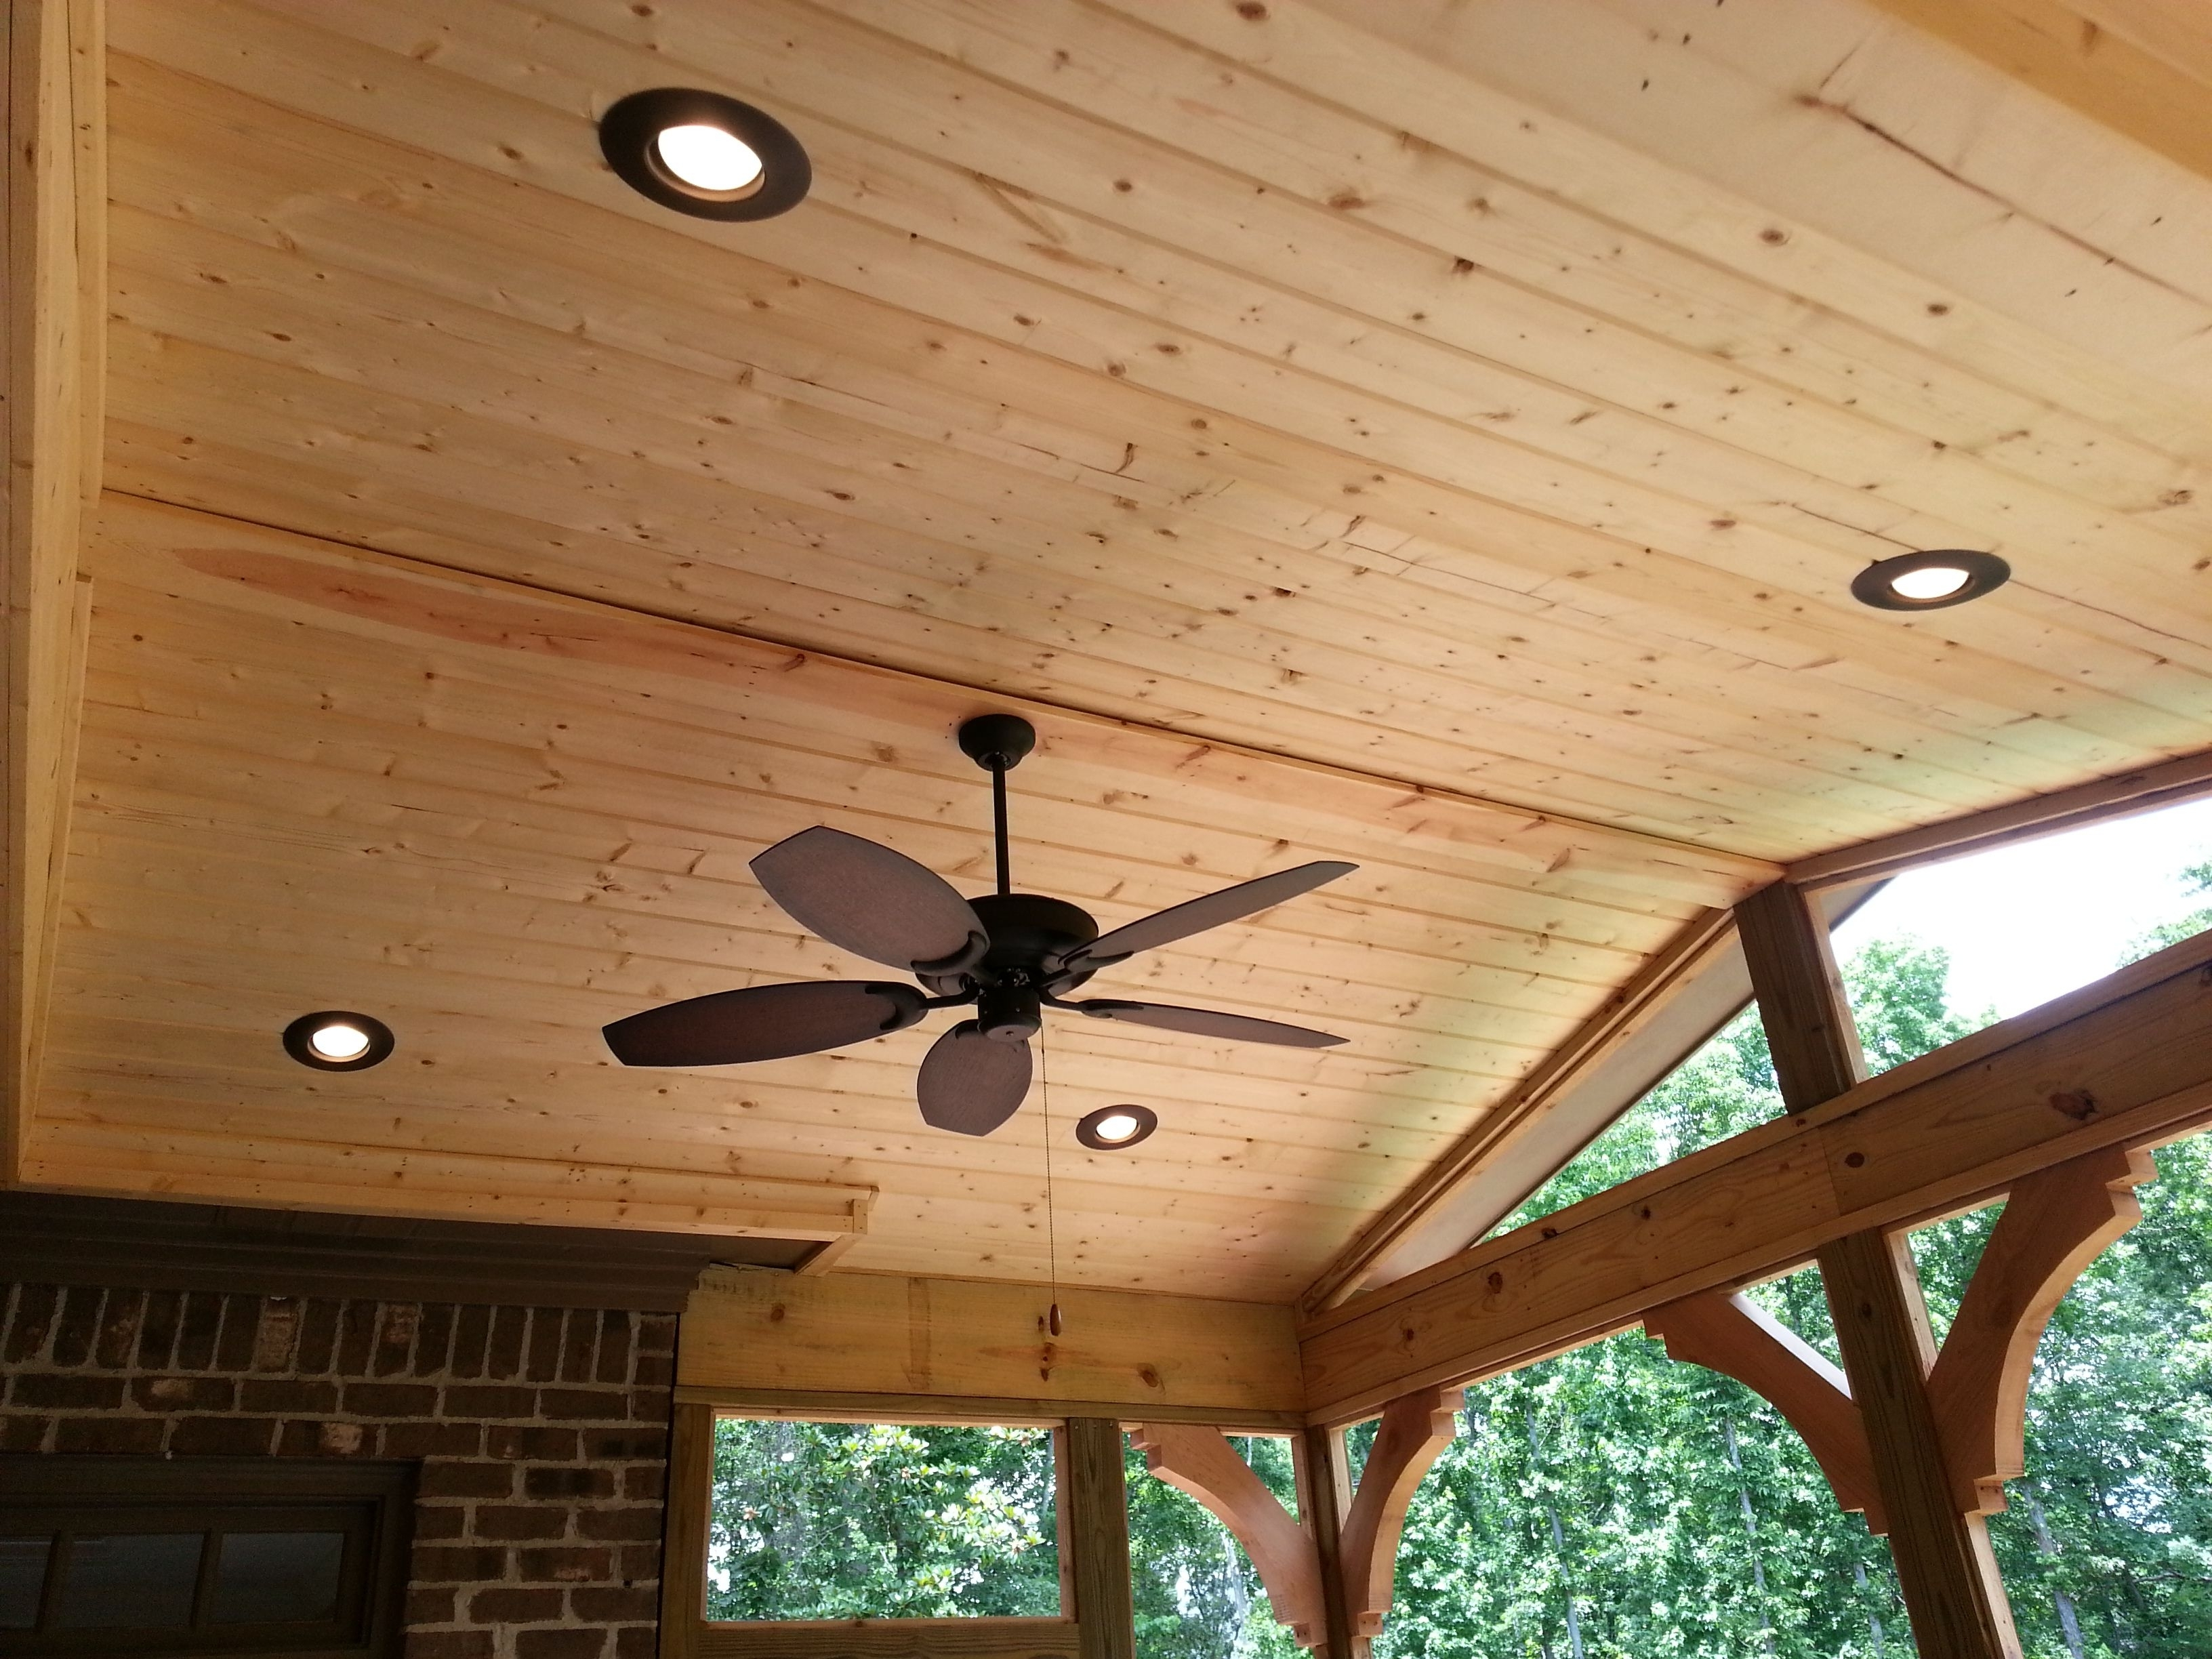 Most Up To Date Outdoor Ceiling Fans For Decks Inside Finished Ceiling With Ceiling Fan And Can Lights – Design Ideas (Gallery 14 of 20)